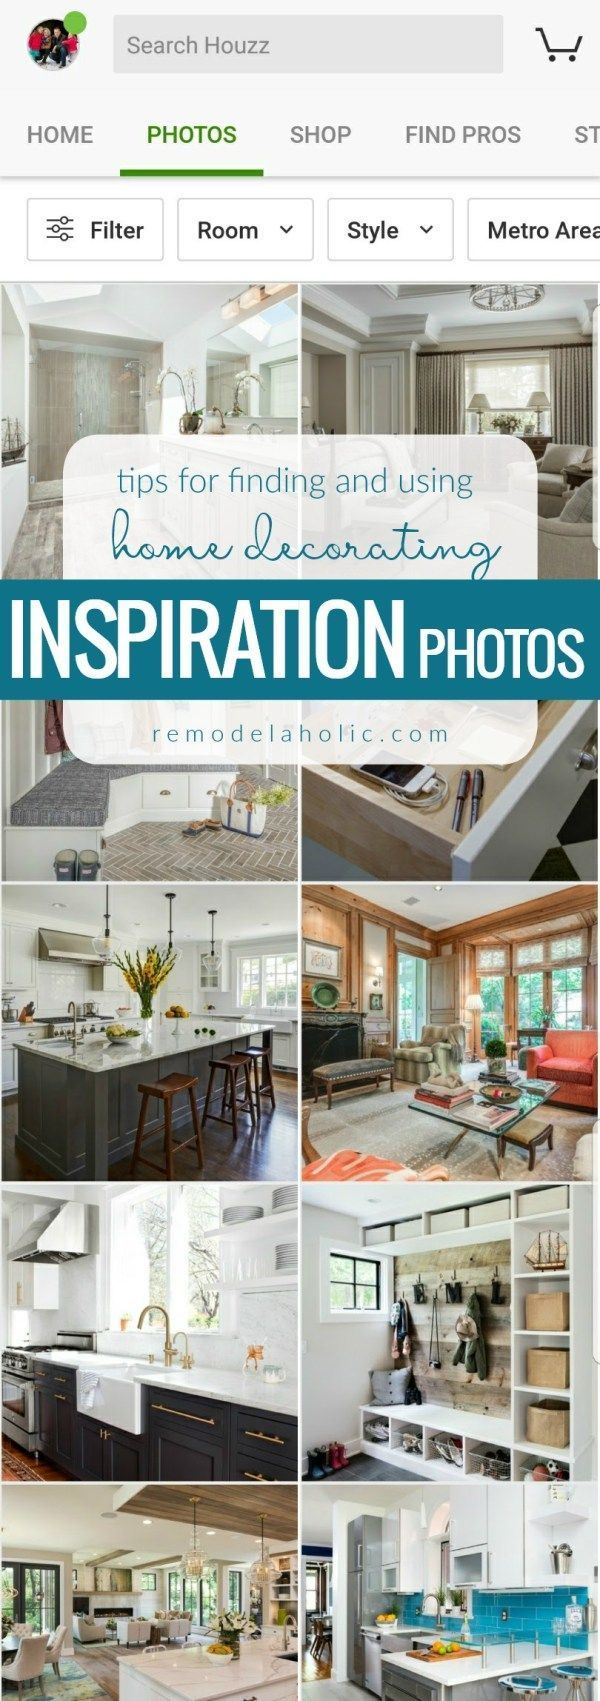 Finding (and Using) Beautiful Home Decorating Inspiration Photos